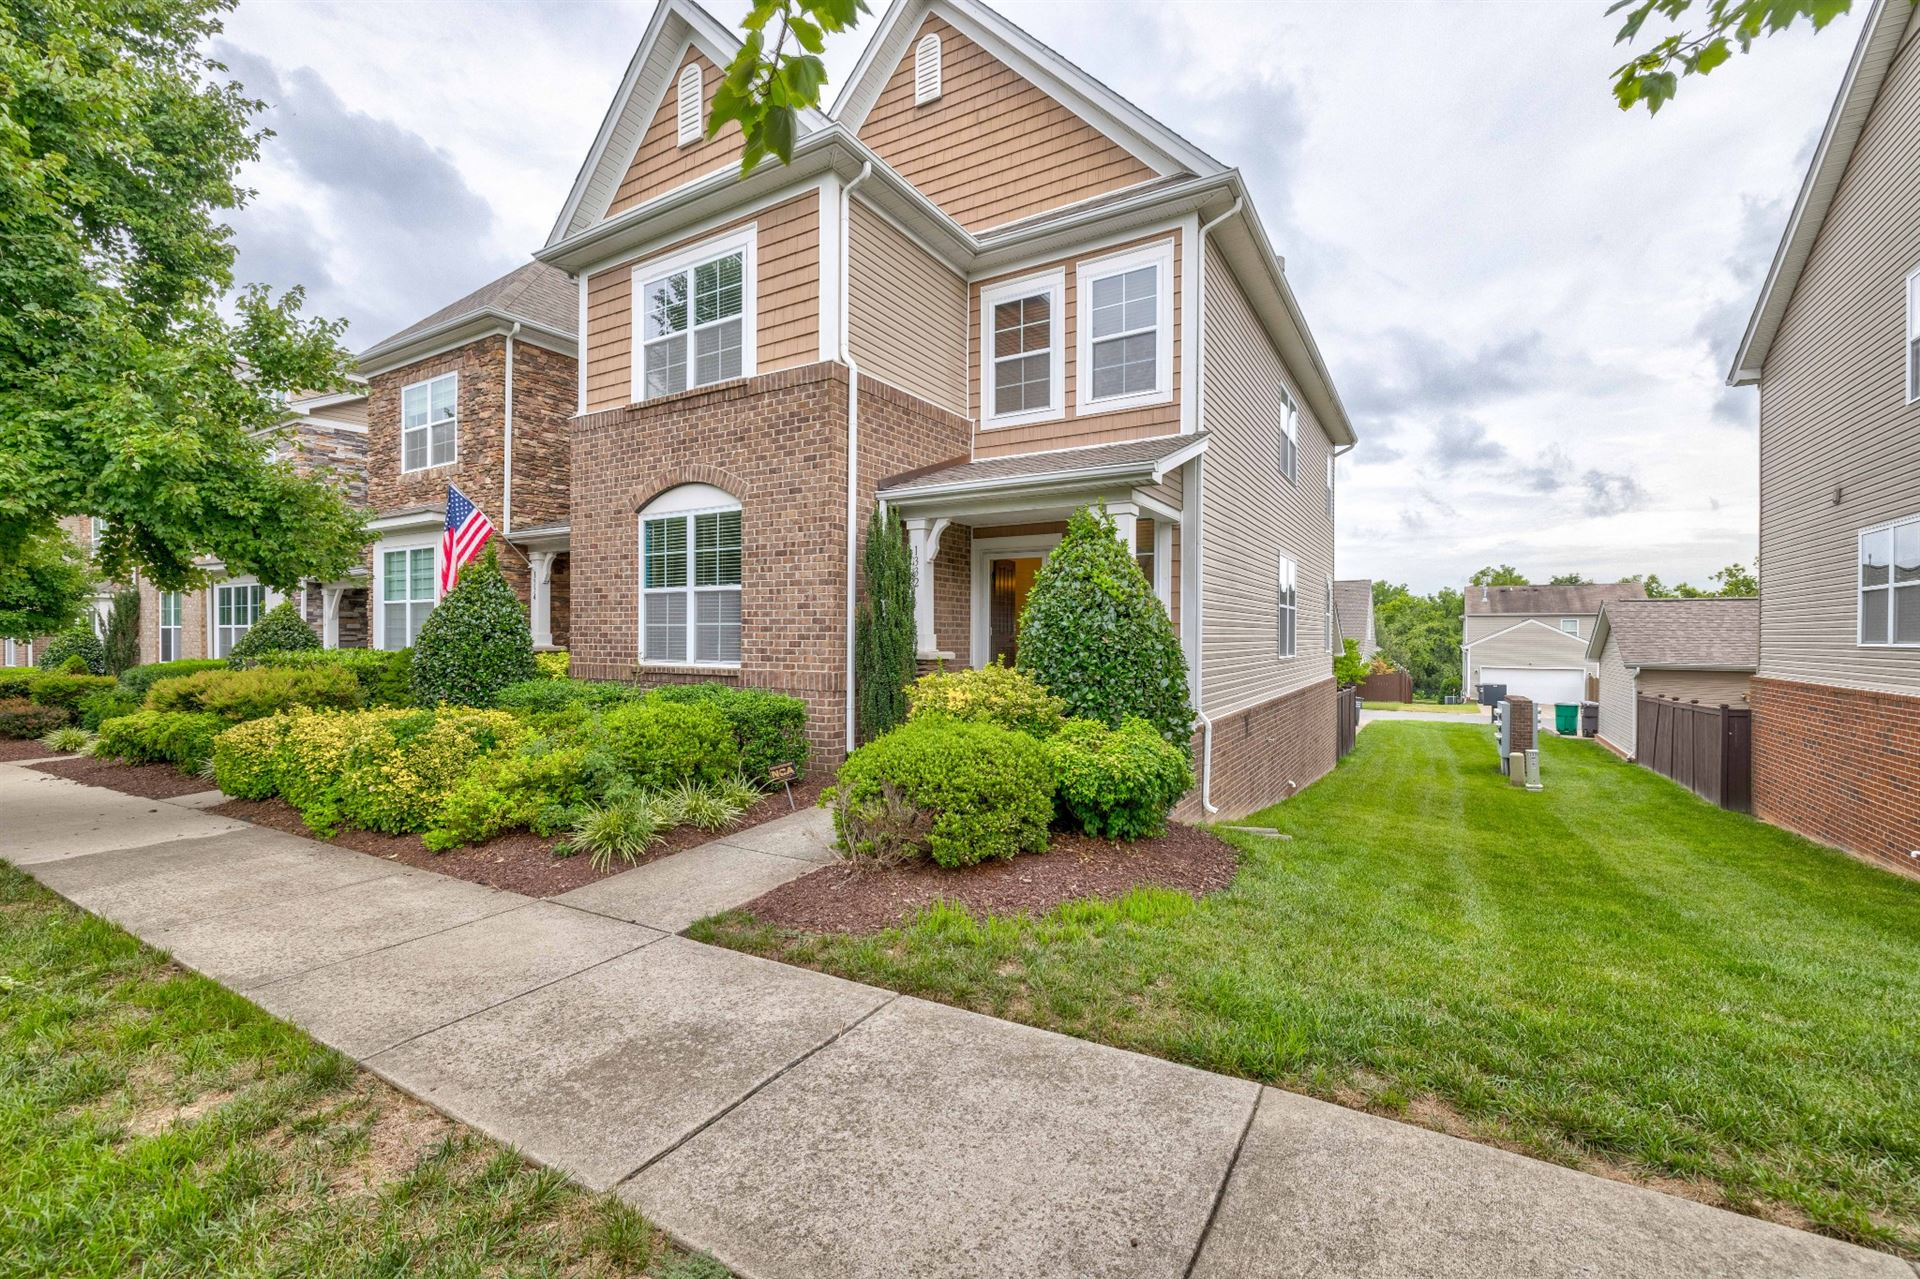 Photo of 1332 Riverbrook Dr #59, Hermitage, TN 37076 (MLS # 2282909)